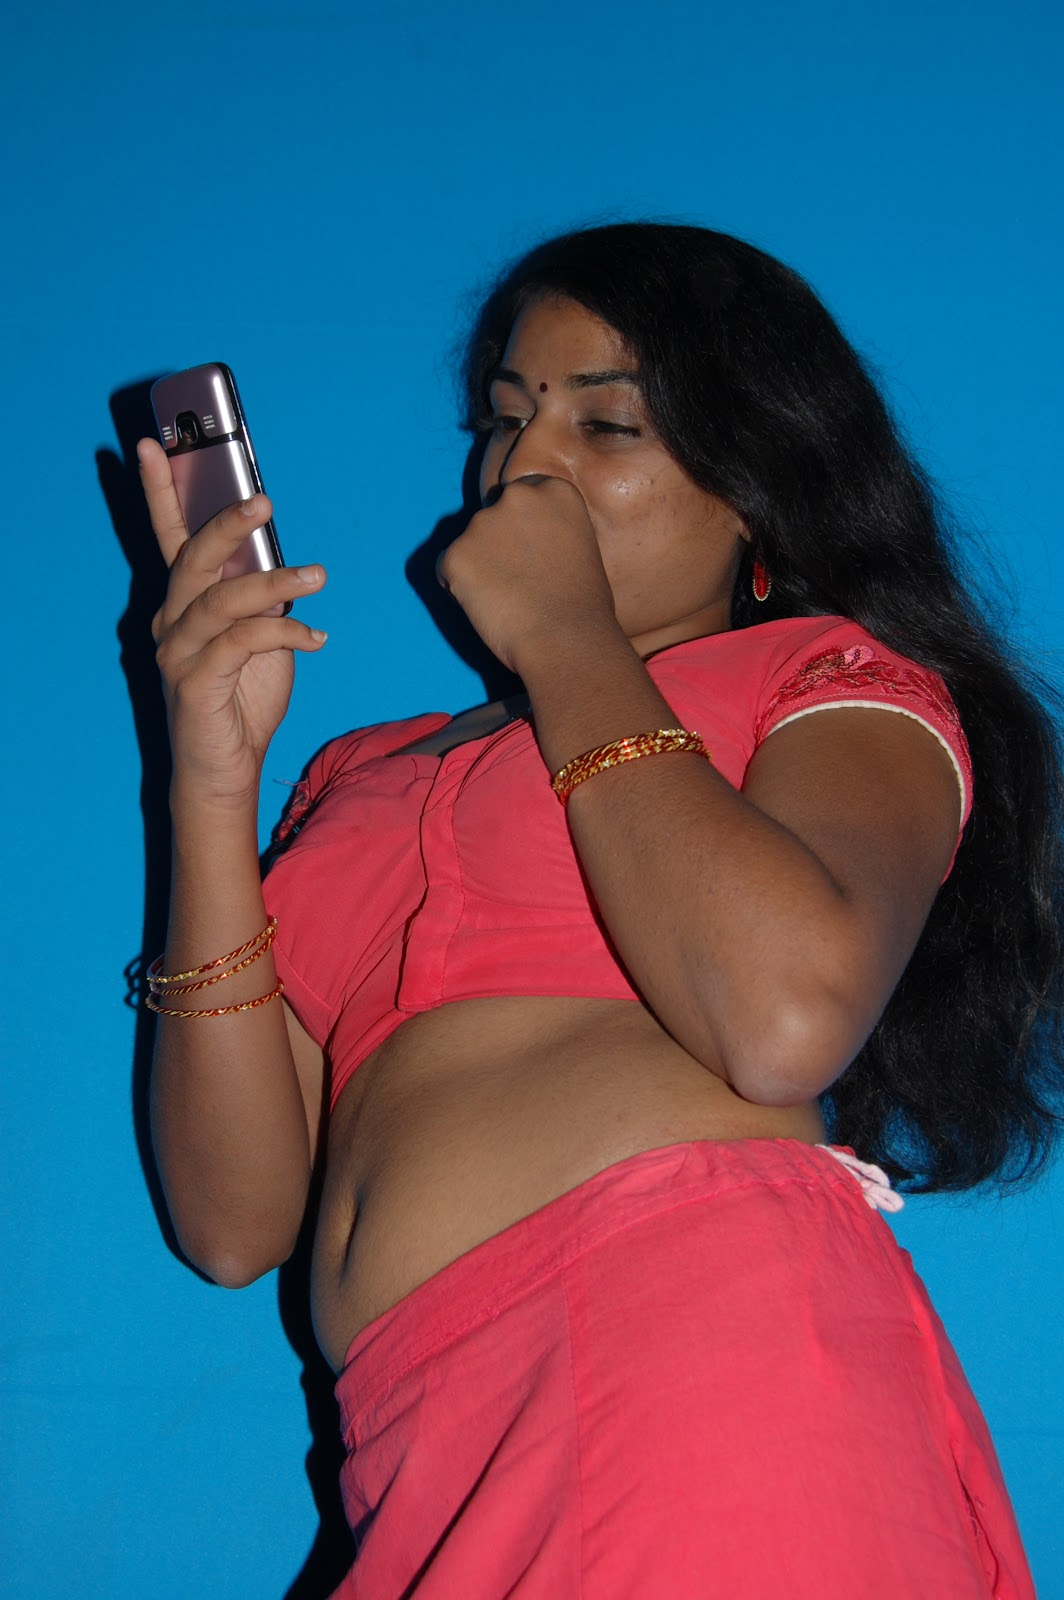 Desi pregnent nacked image